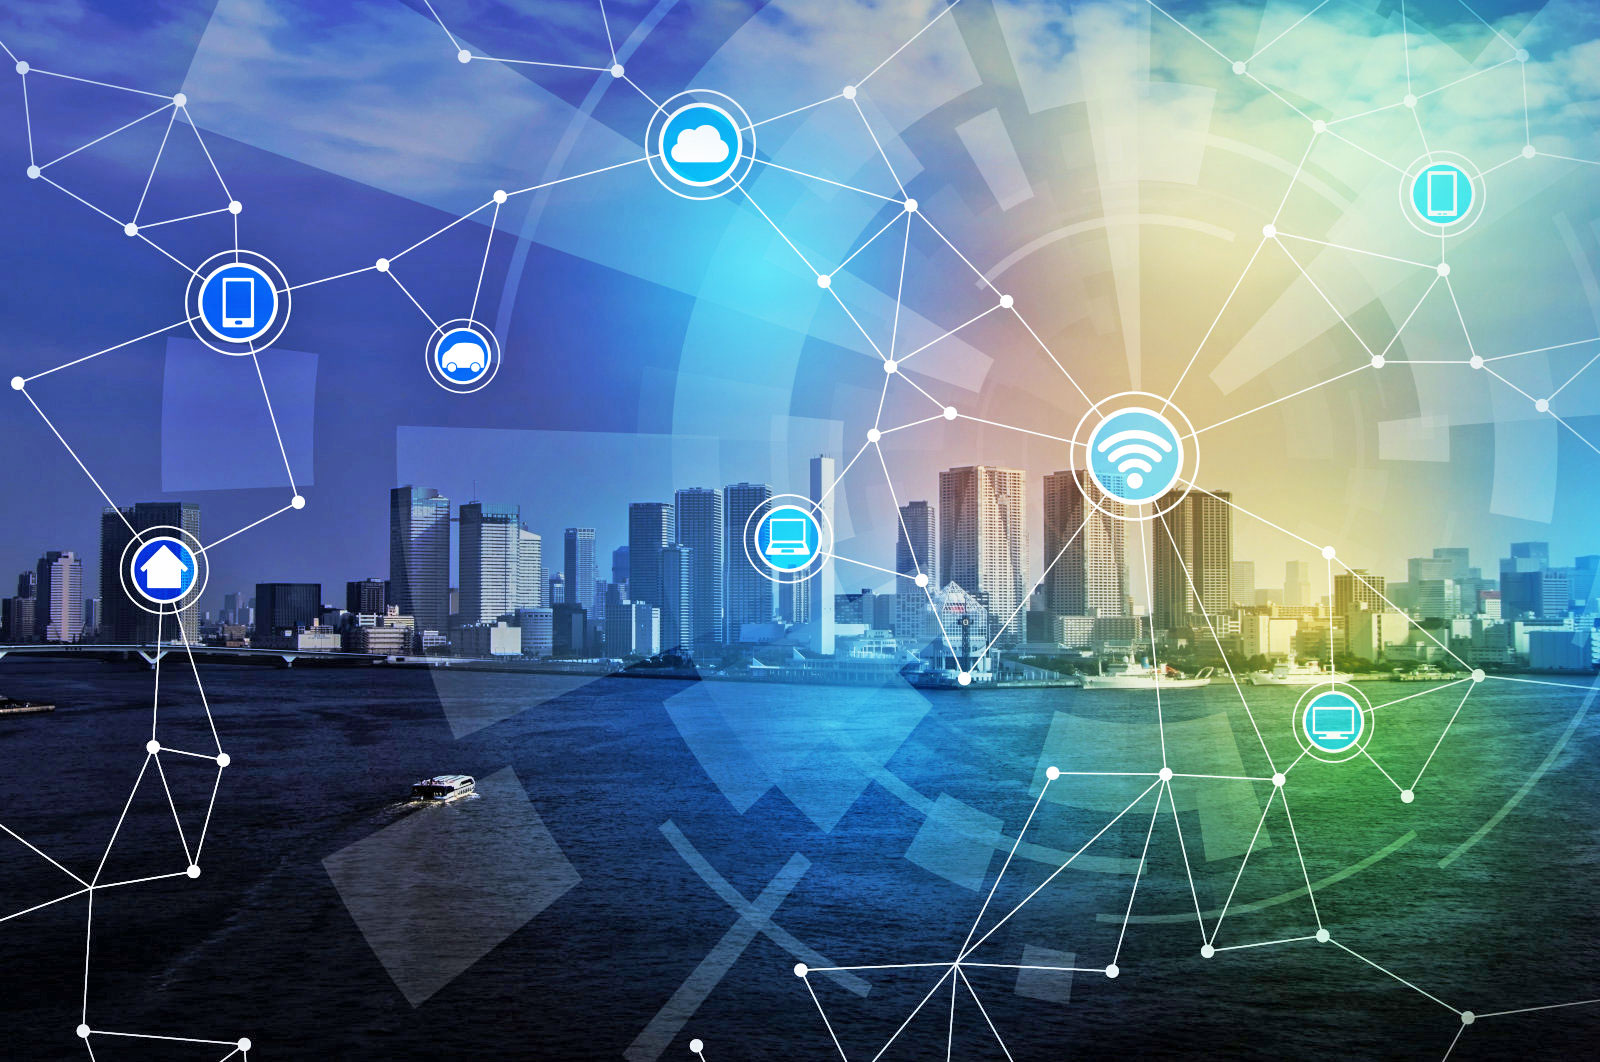 Bluetooth mesh networking could connect smart devices city for City of la 457